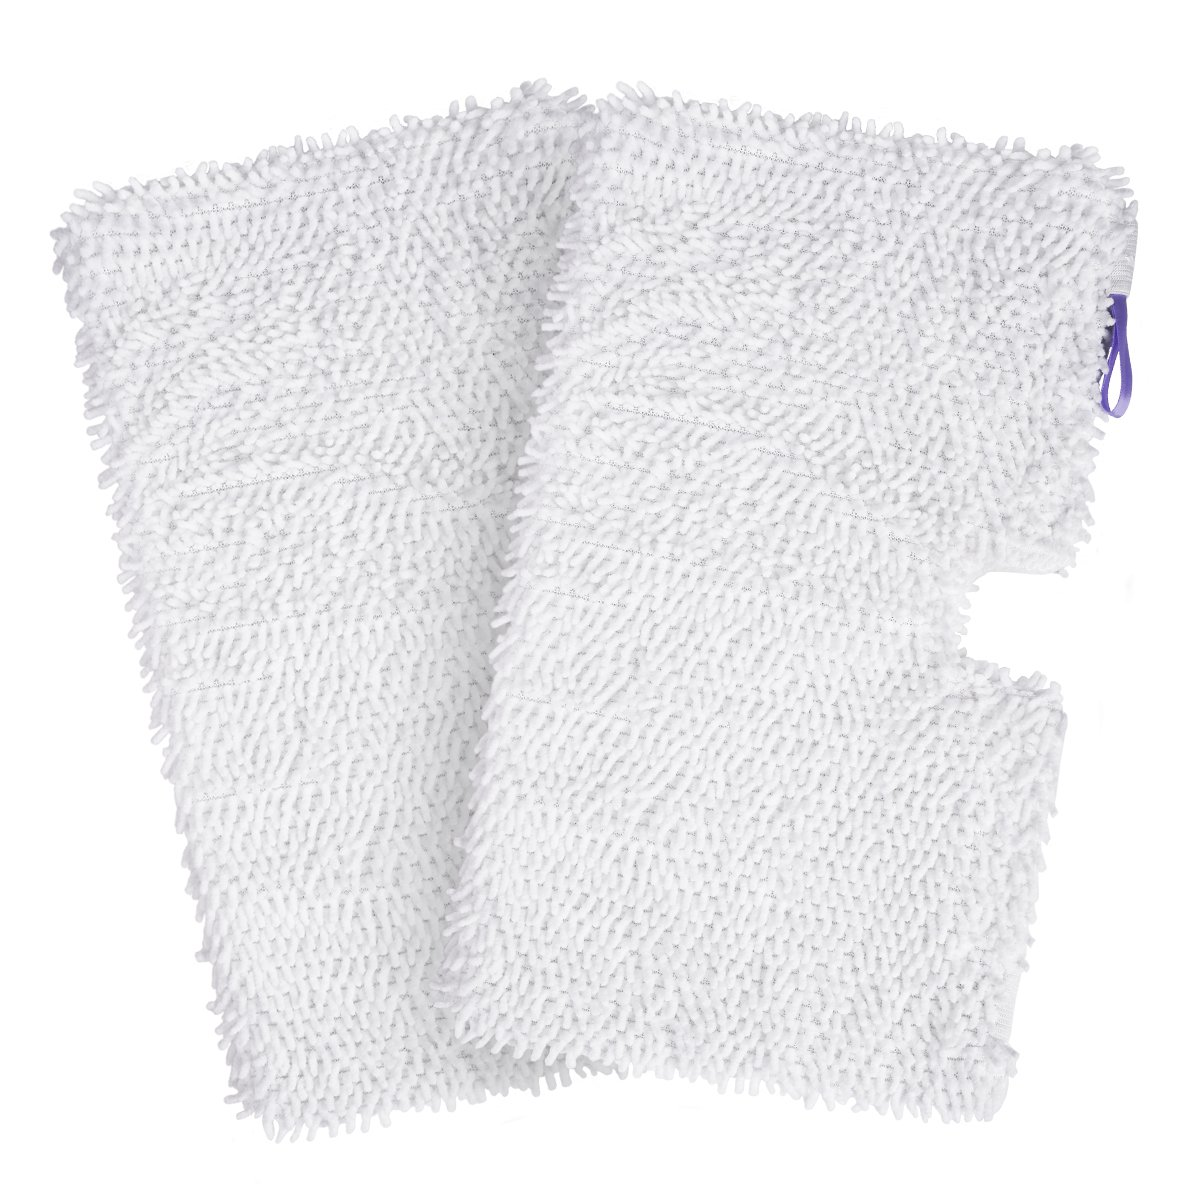 2 Pack Washable Cleaning Pads Household Microfiber Replacement Cleaning Pads for Shark Steam Pocket Mops S3500 Series S3501 S3601 S3550 S3901 S3801 SE450 Ordekcity Shark Steam Mop Pad